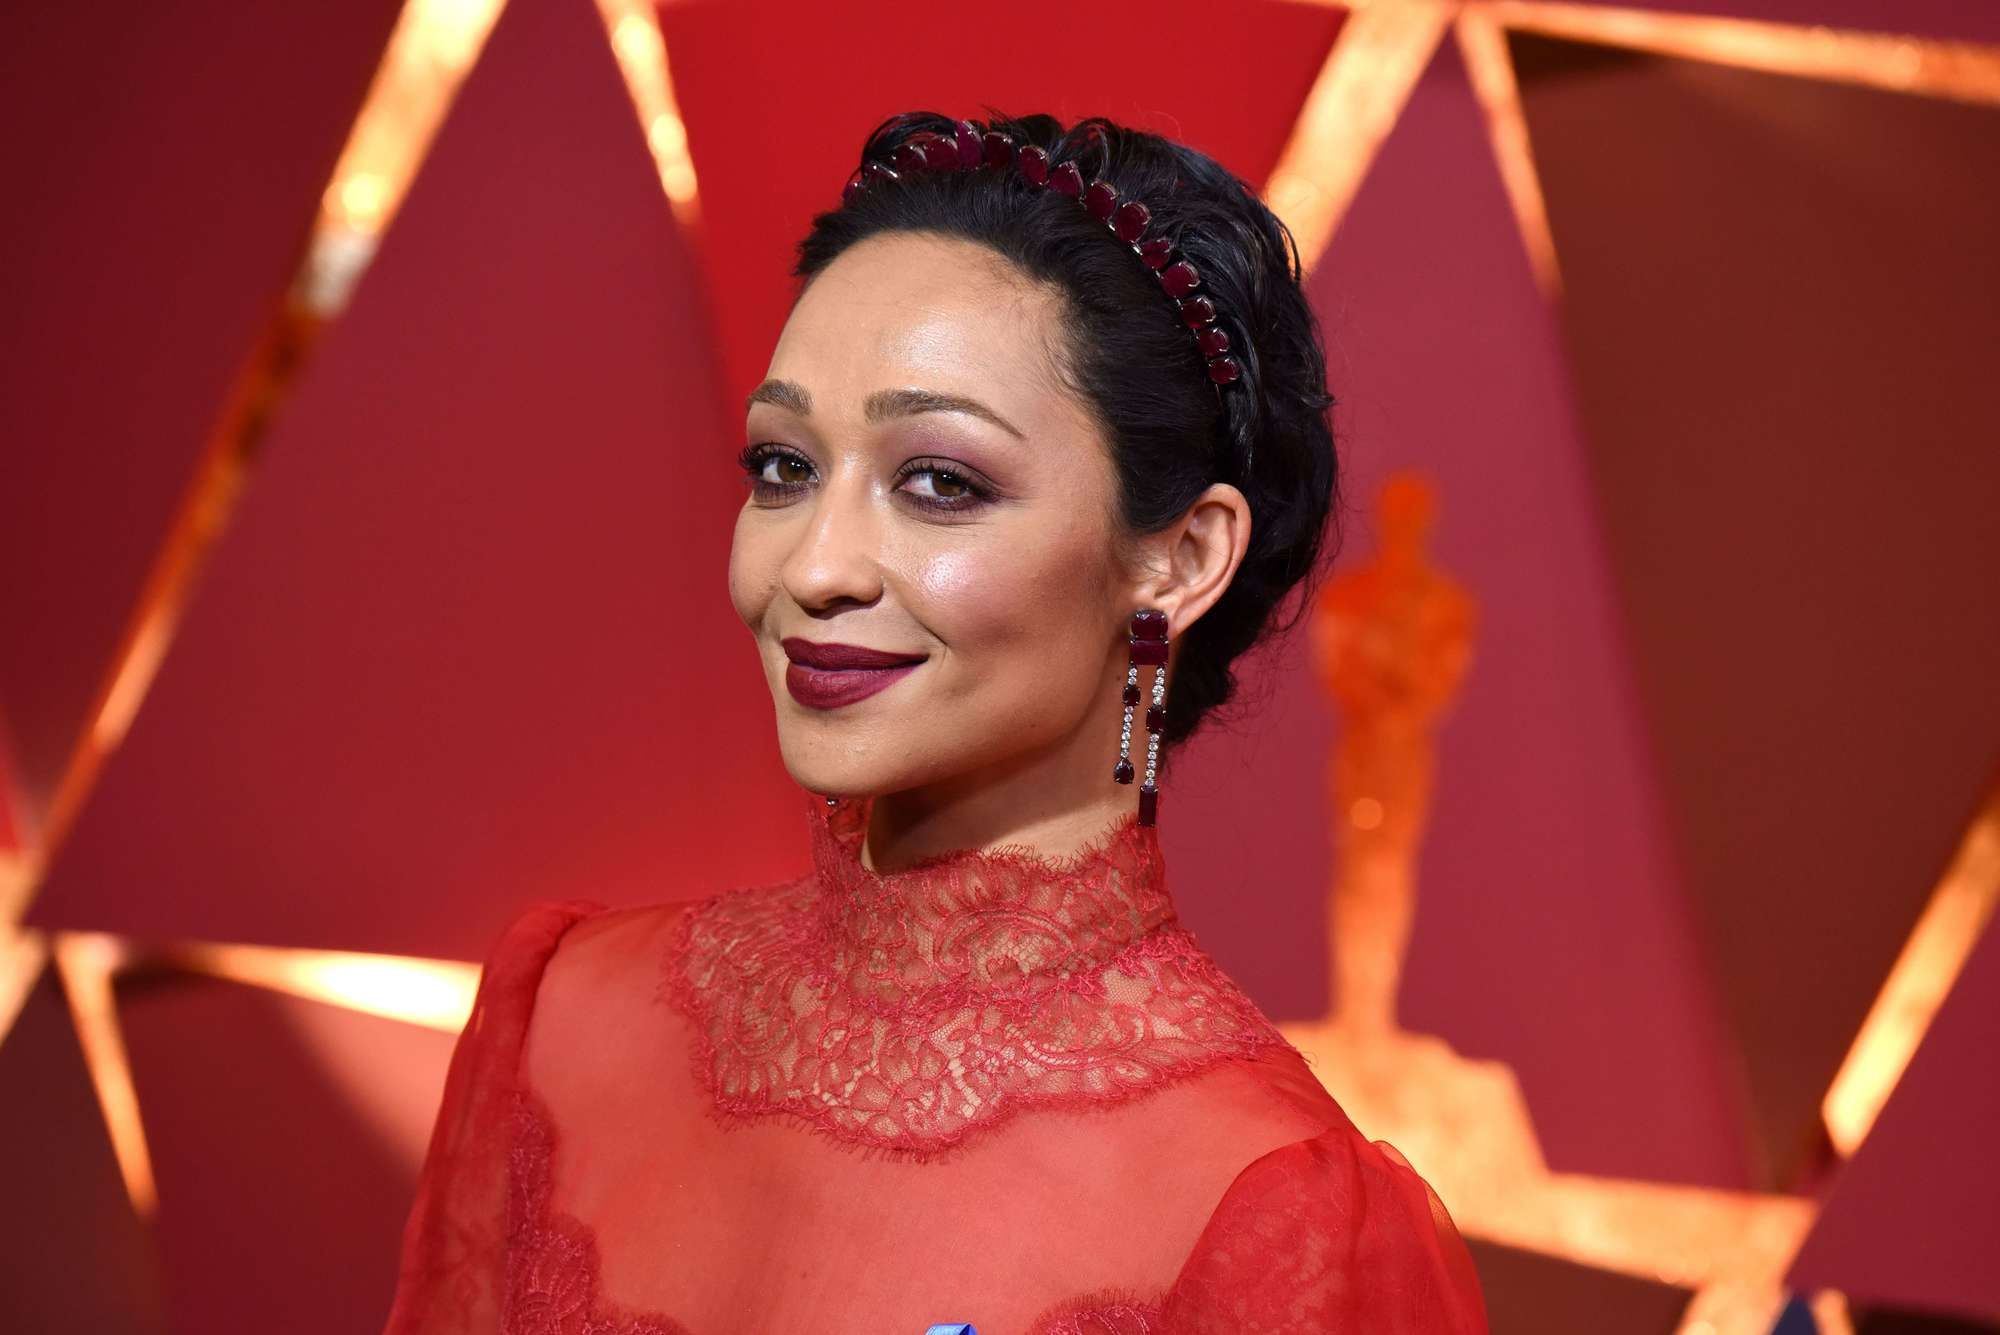 ruth negga at the oscars 2017 wearing a high neck sheer red lace dress with her hair in an updo with red hairband